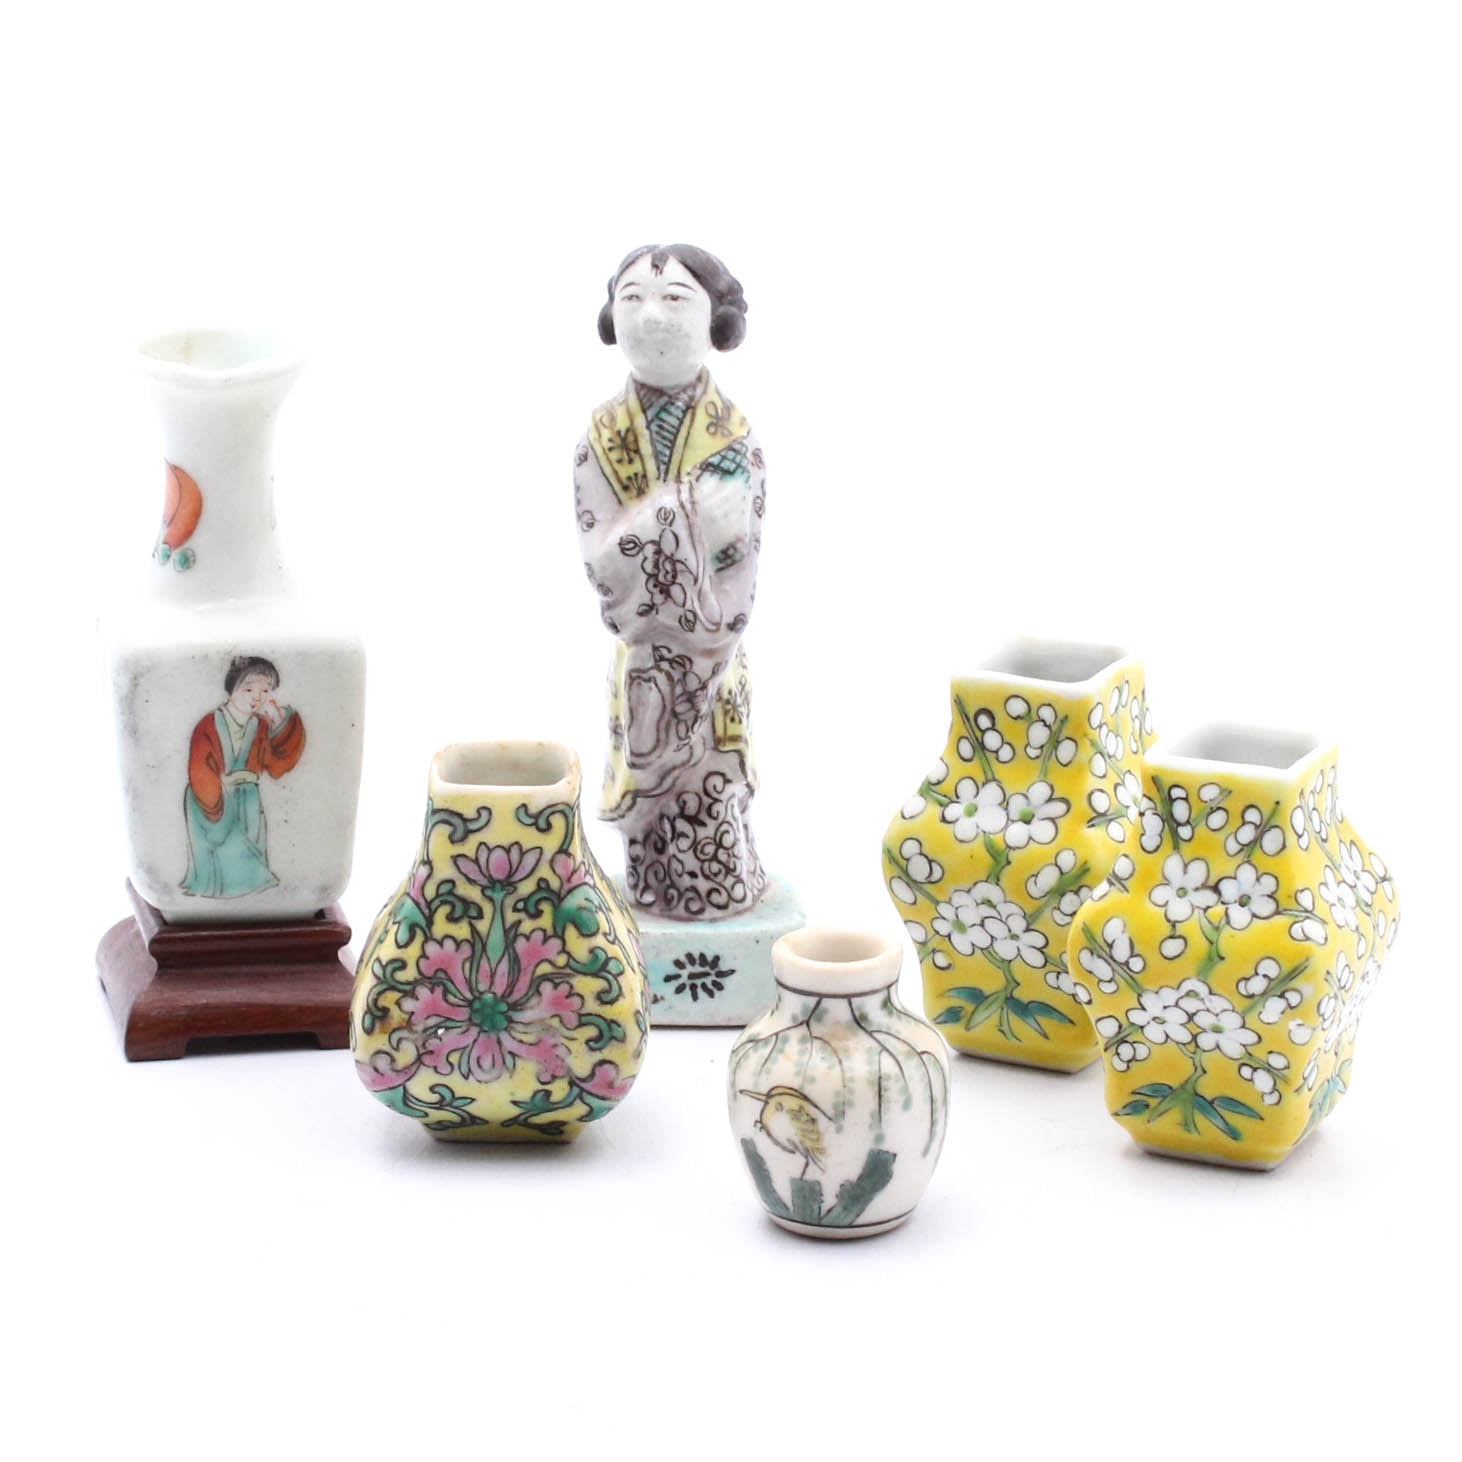 Vintage Chinese Miniature Figurine and Vases